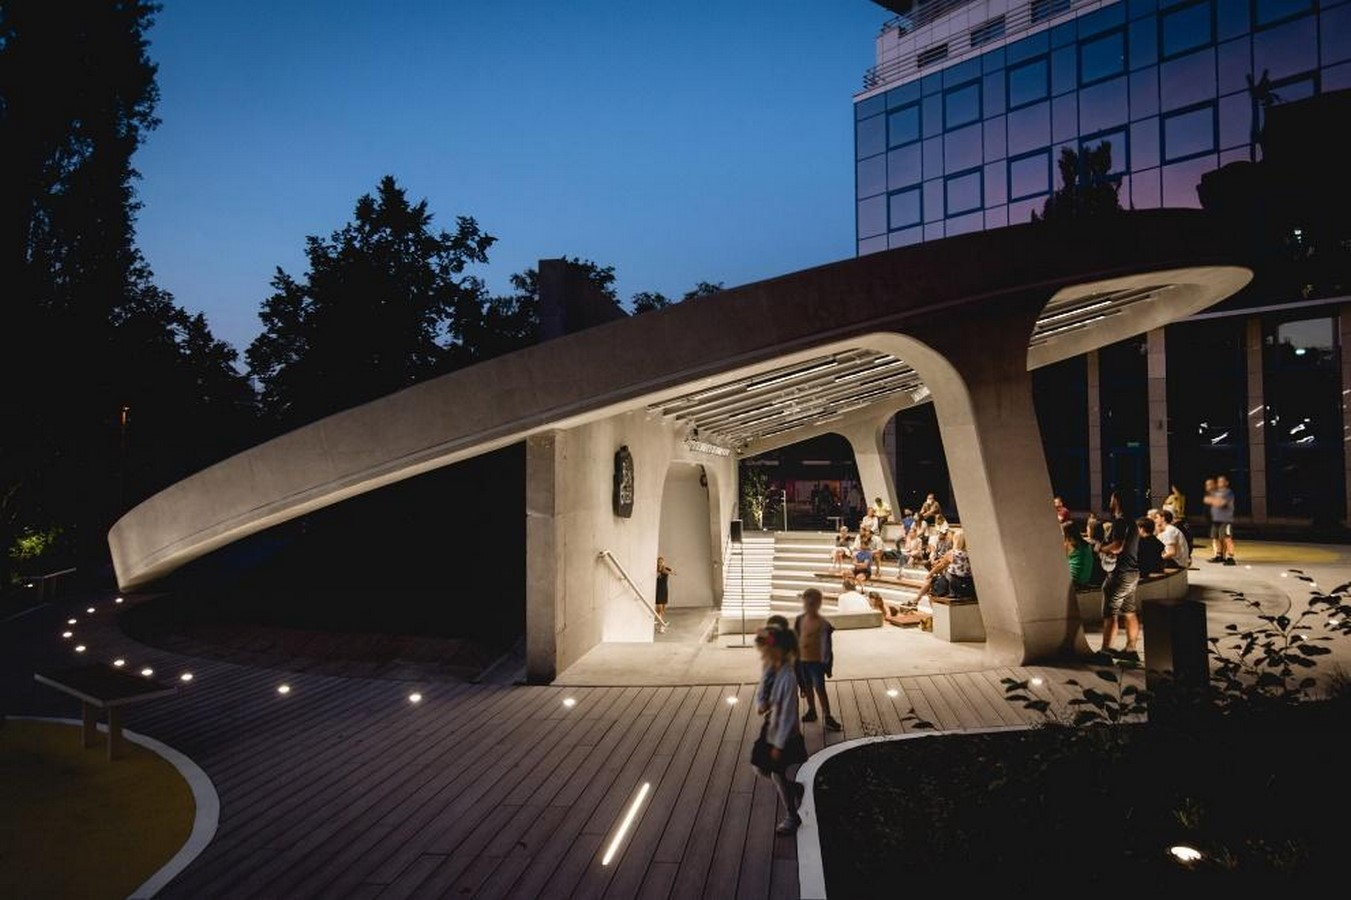 A concrete amphitheater as an 'open, democratic space' in Warsaw designed by Lina - Sheet2